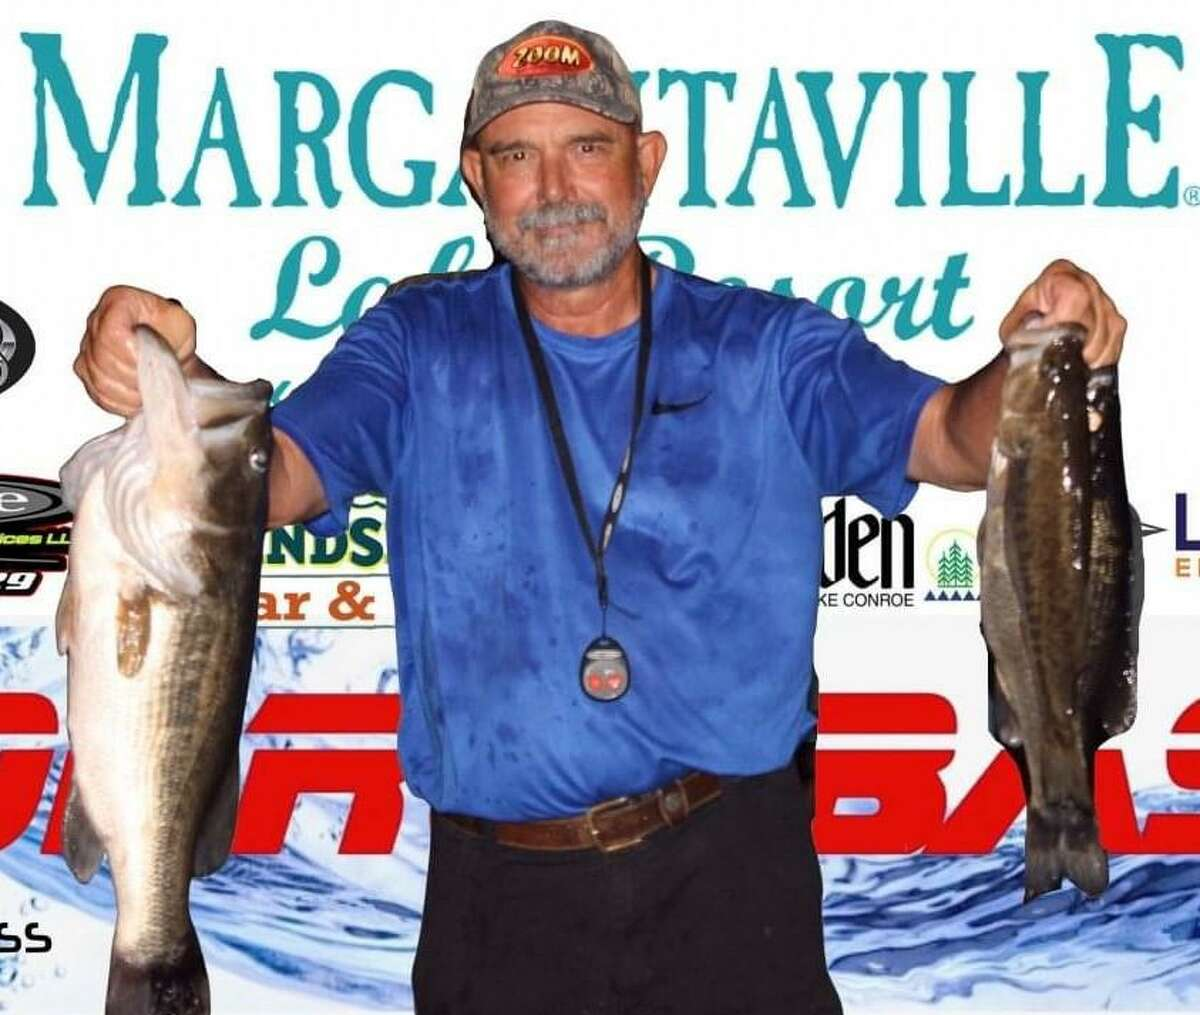 Mickey Mueller came in first place in the CONROEBASS Tuesday Tournament with a weight of 14.60 pounds.